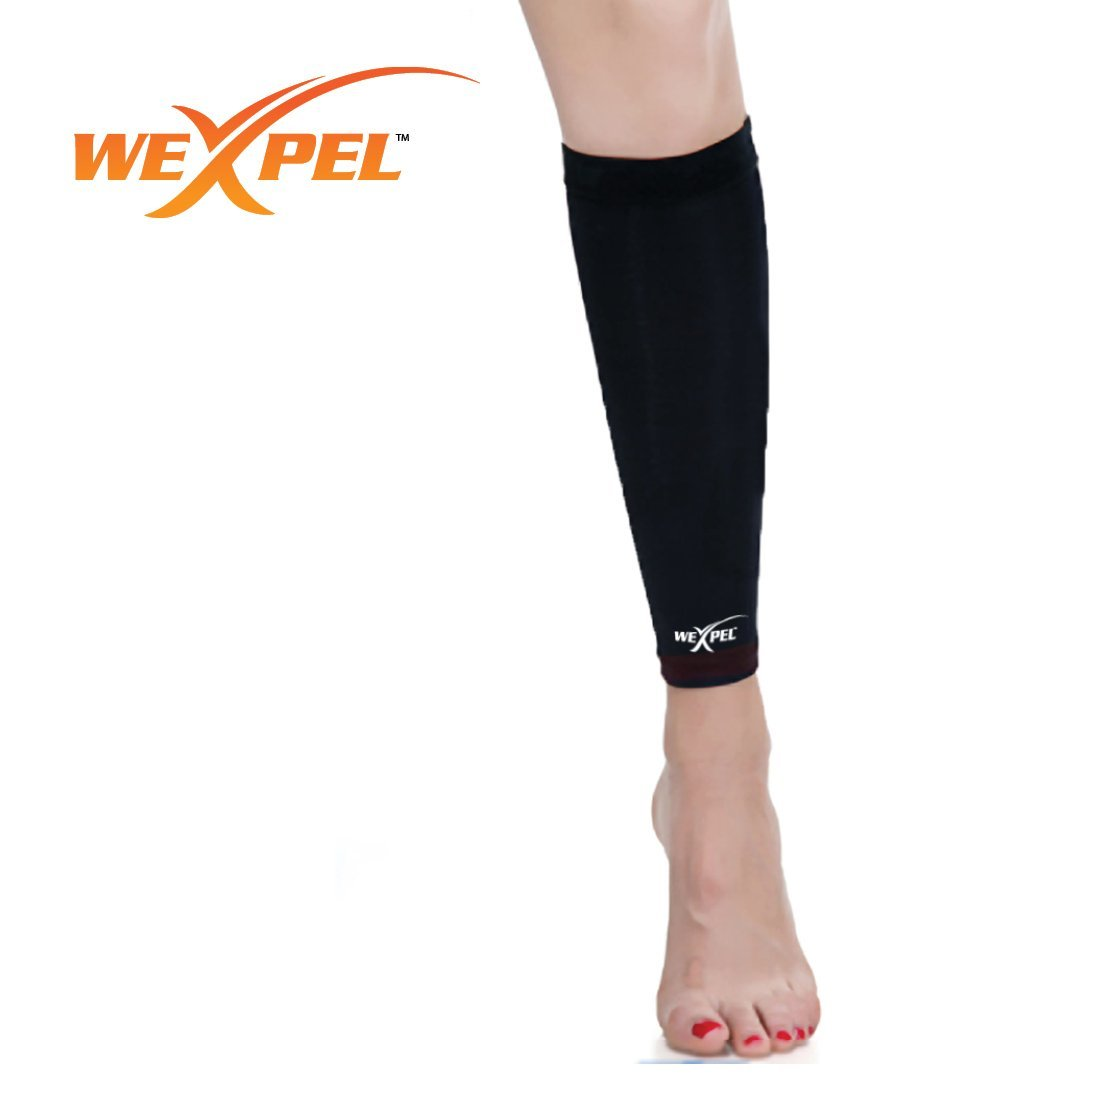 Wexpel (TM) Calf Sleeve with Copper Infused Compression (1 sleeve)